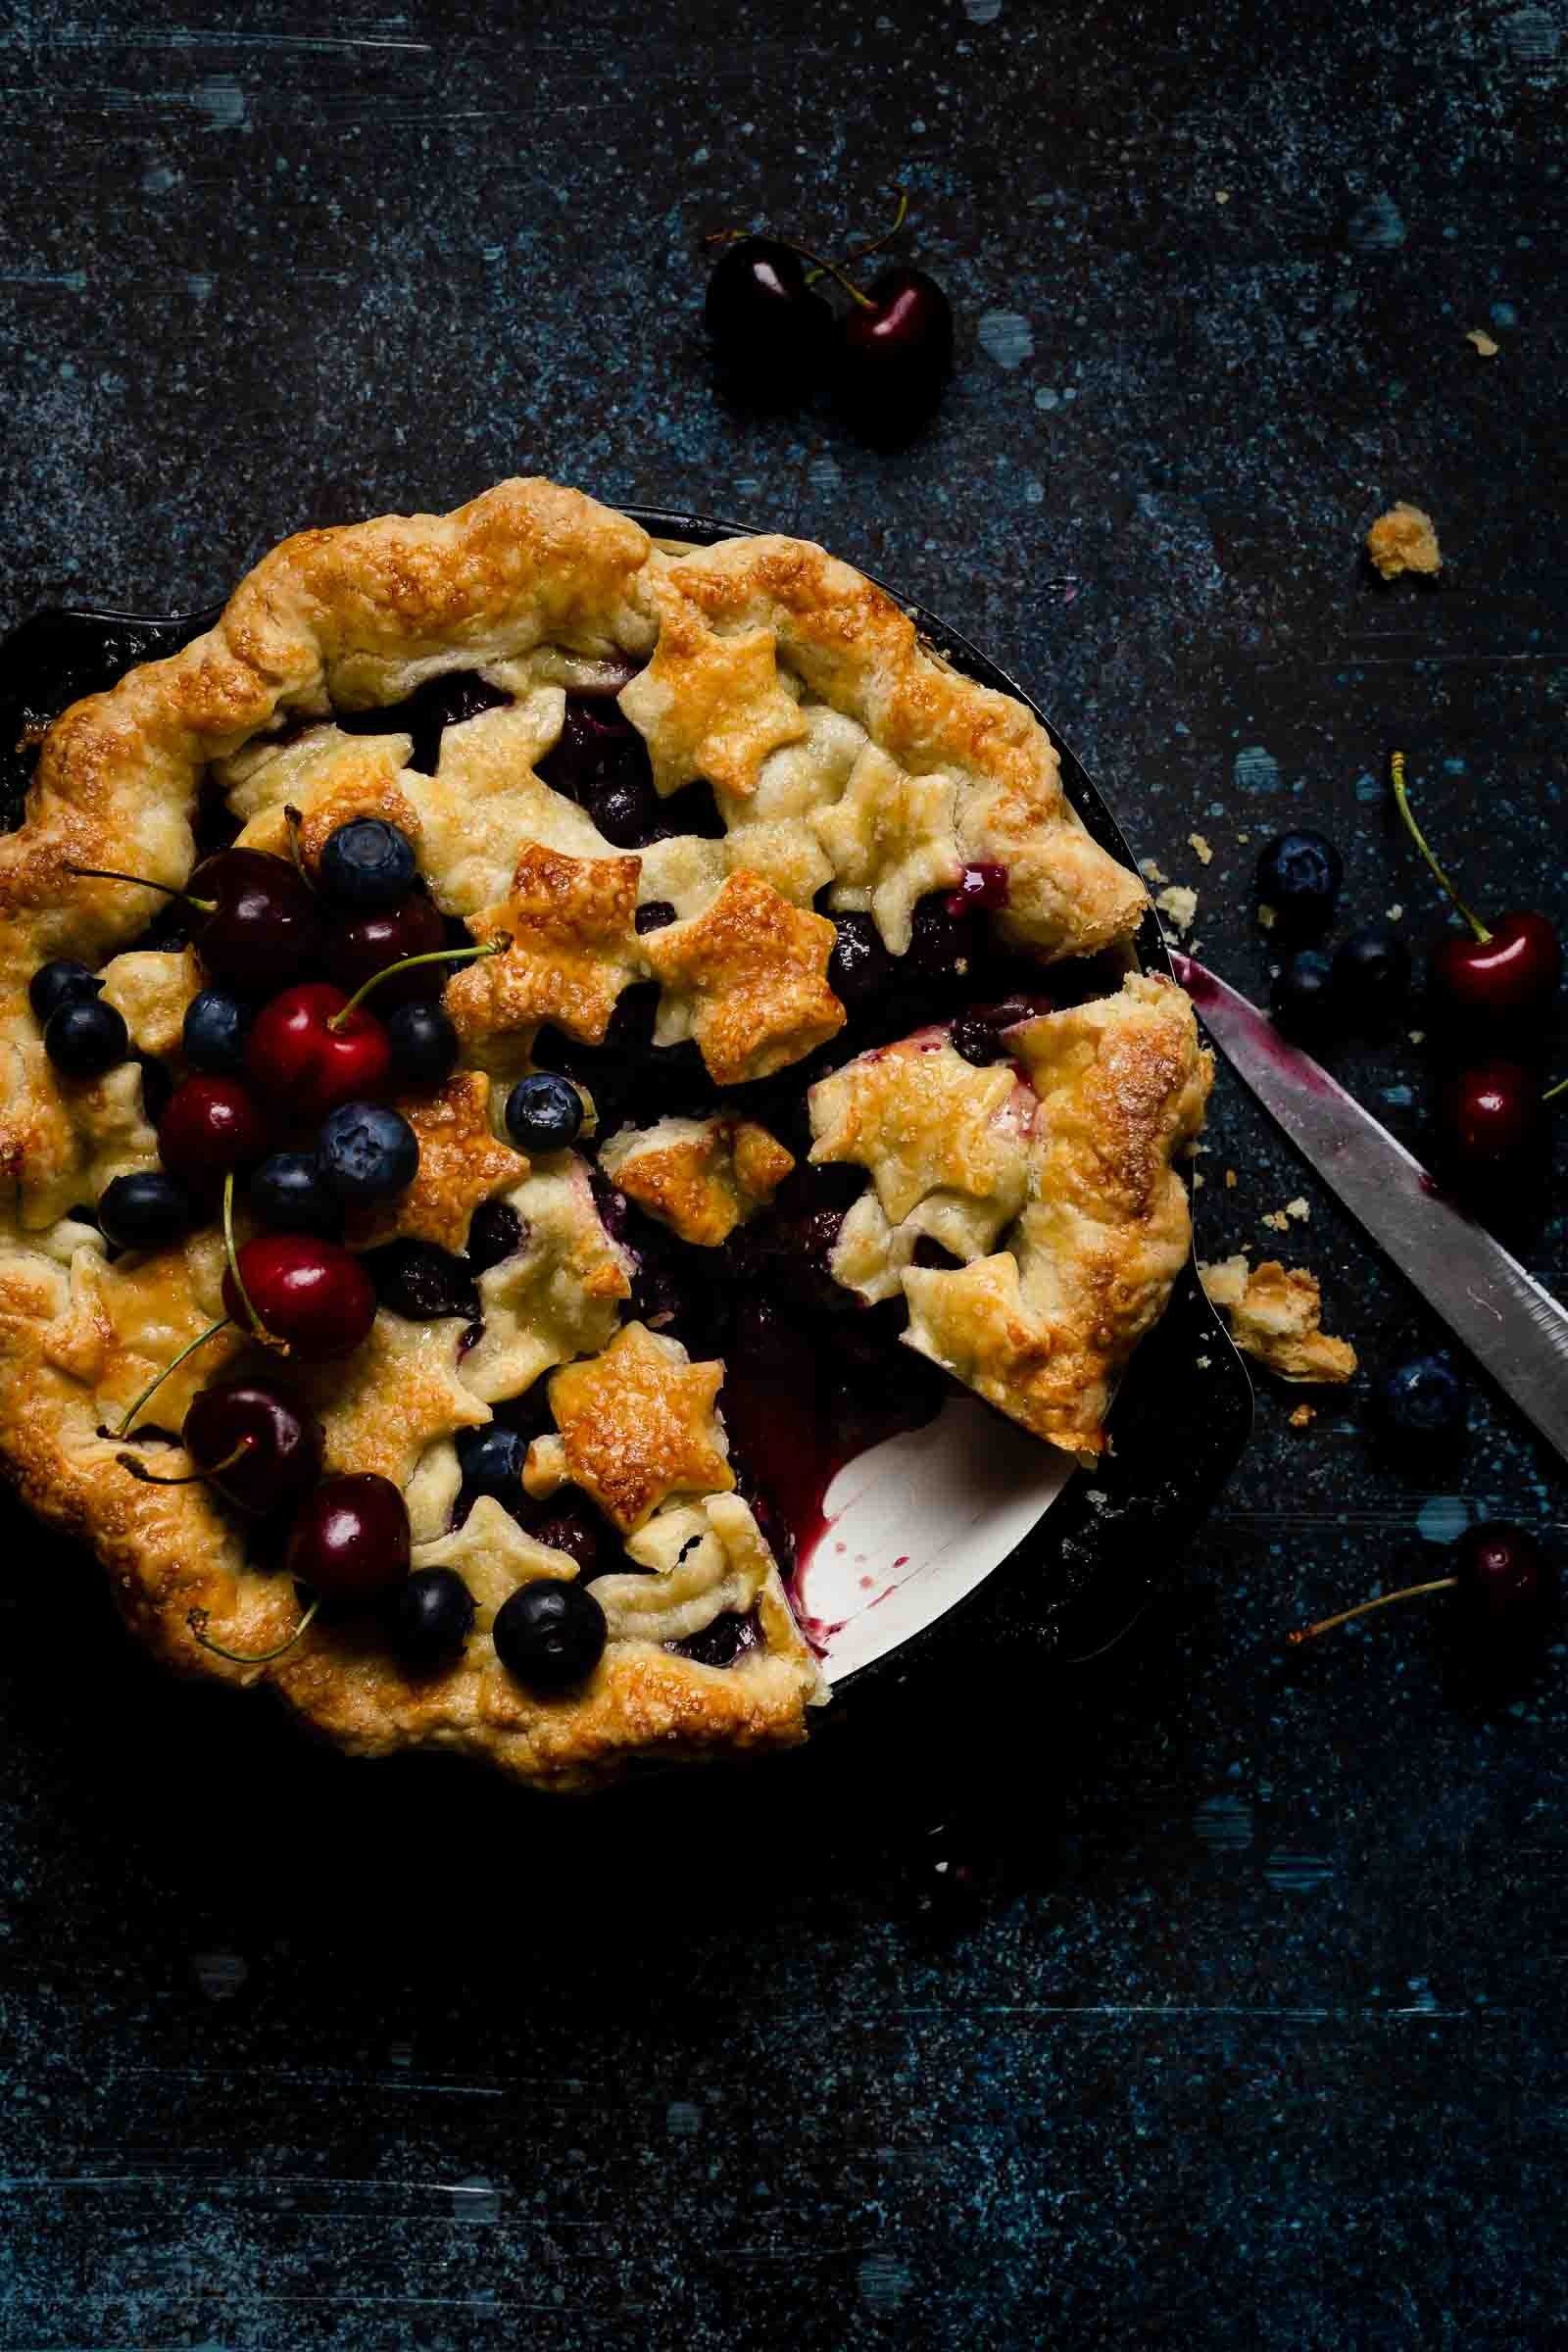 slicing blueberry pie